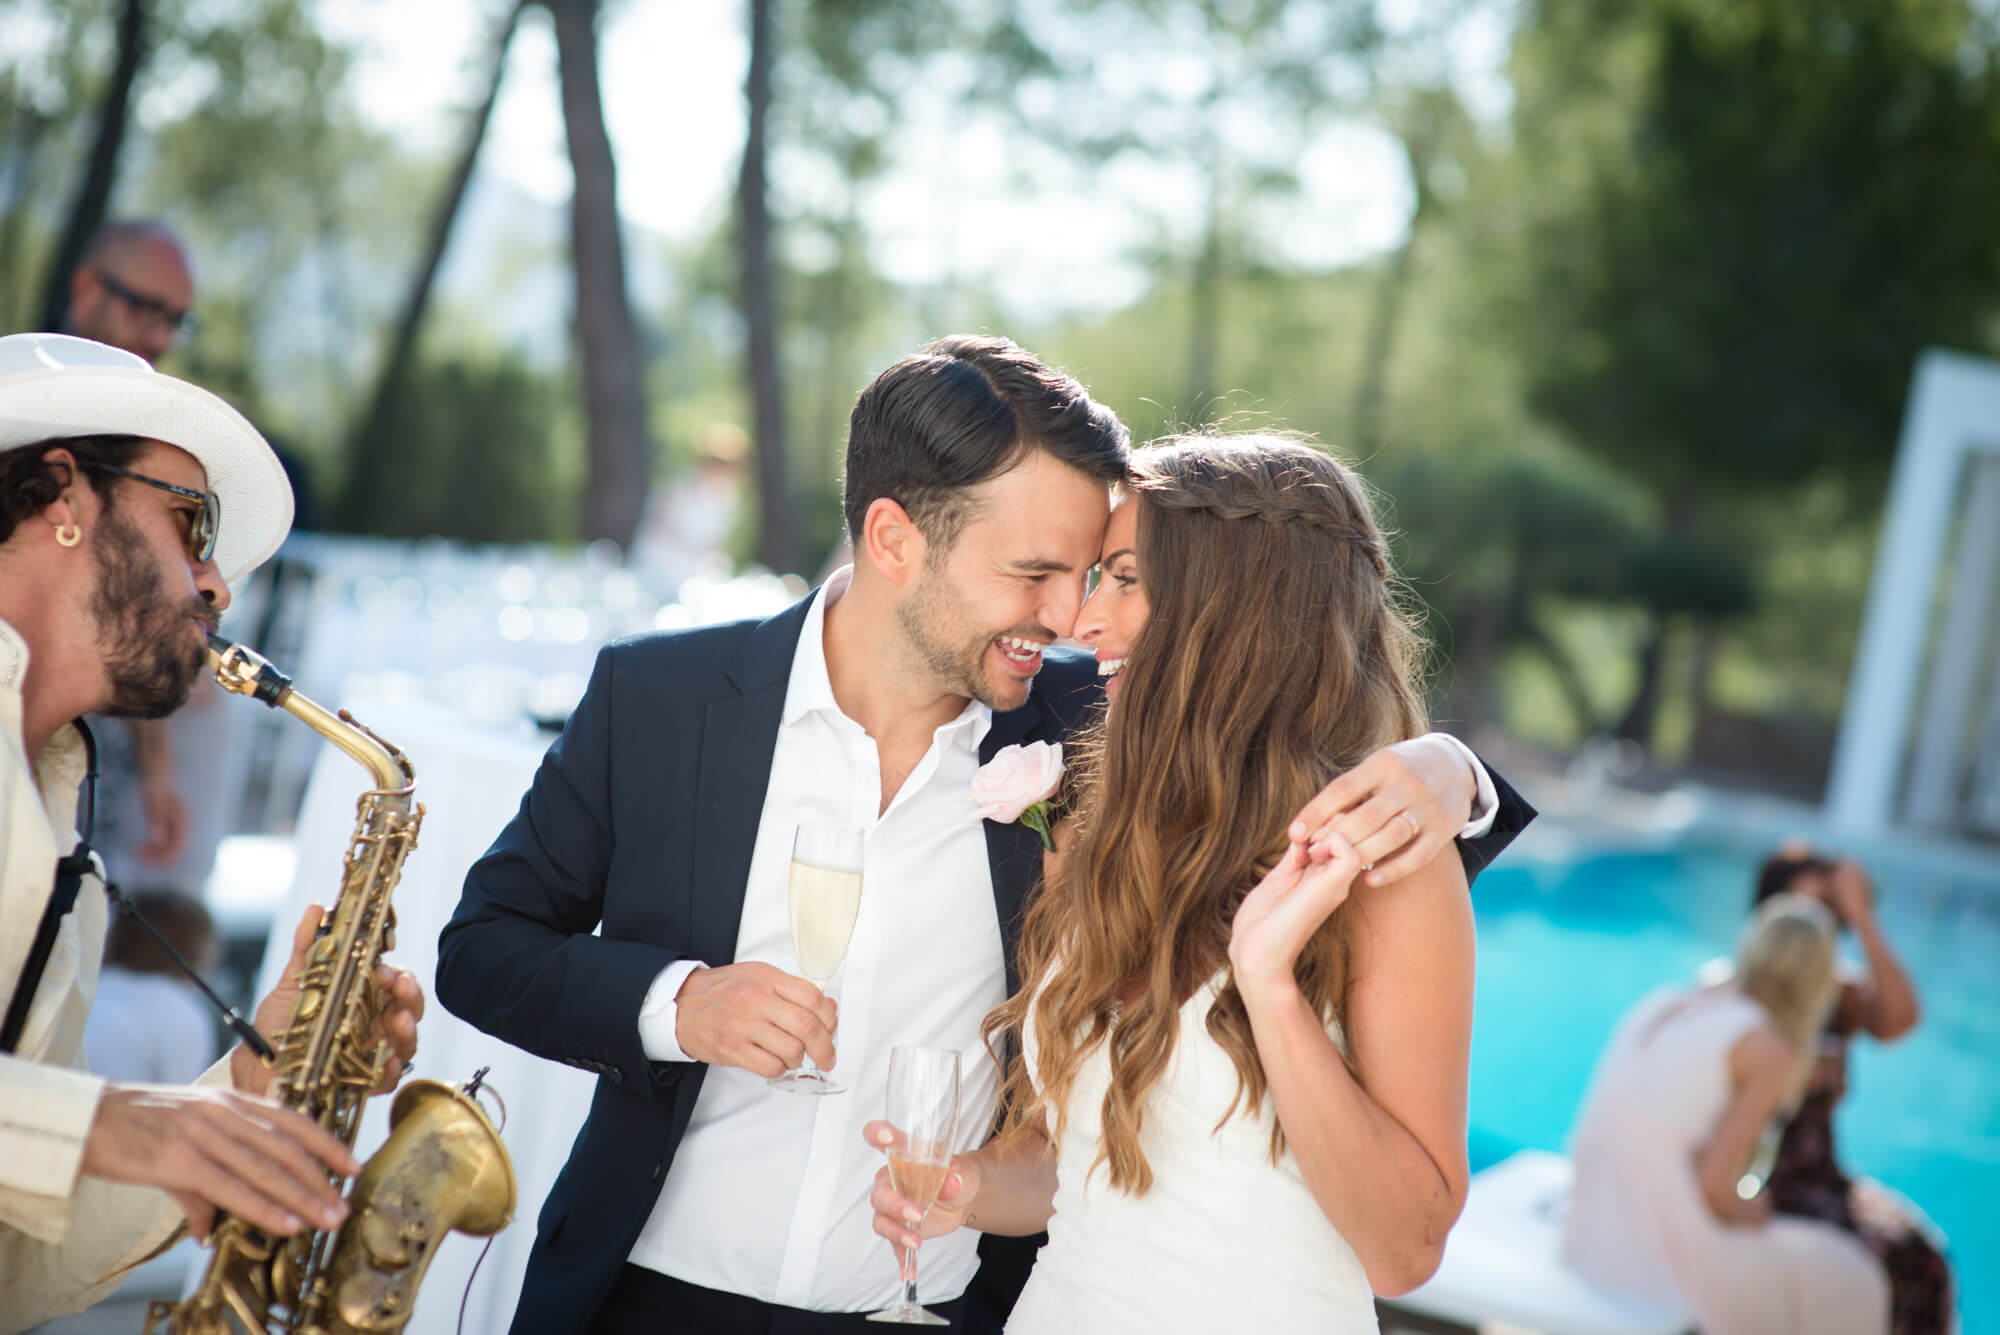 happy couple champagne cocktail hour poolside reception saxophonist